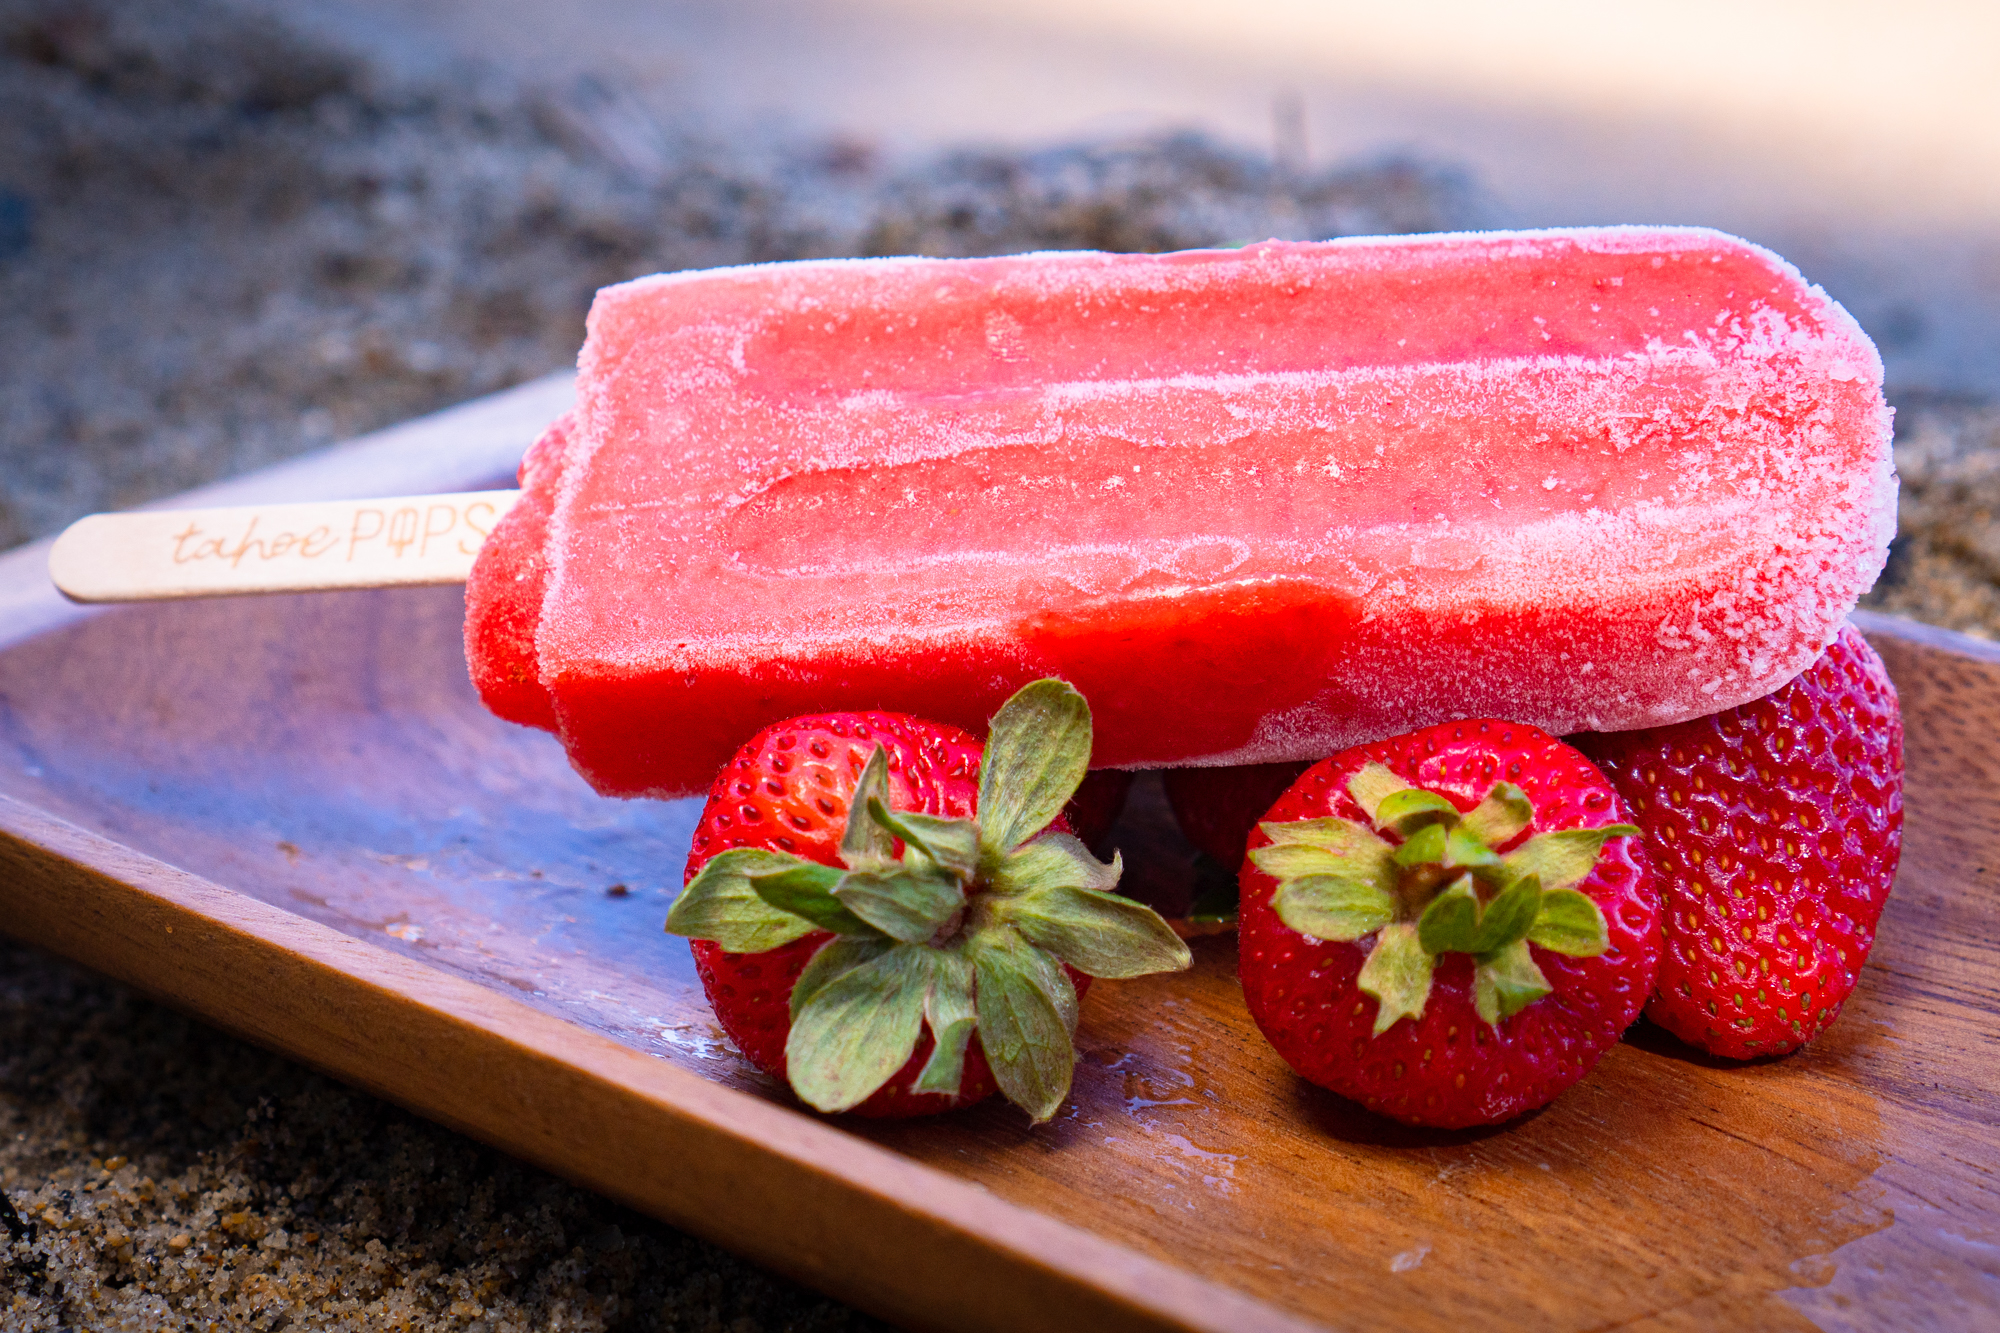 Ingredients: Fresh strawberries, Lake Tahoe water, organic cane sugar, organic tapioca dextrose, organic pure lime juice